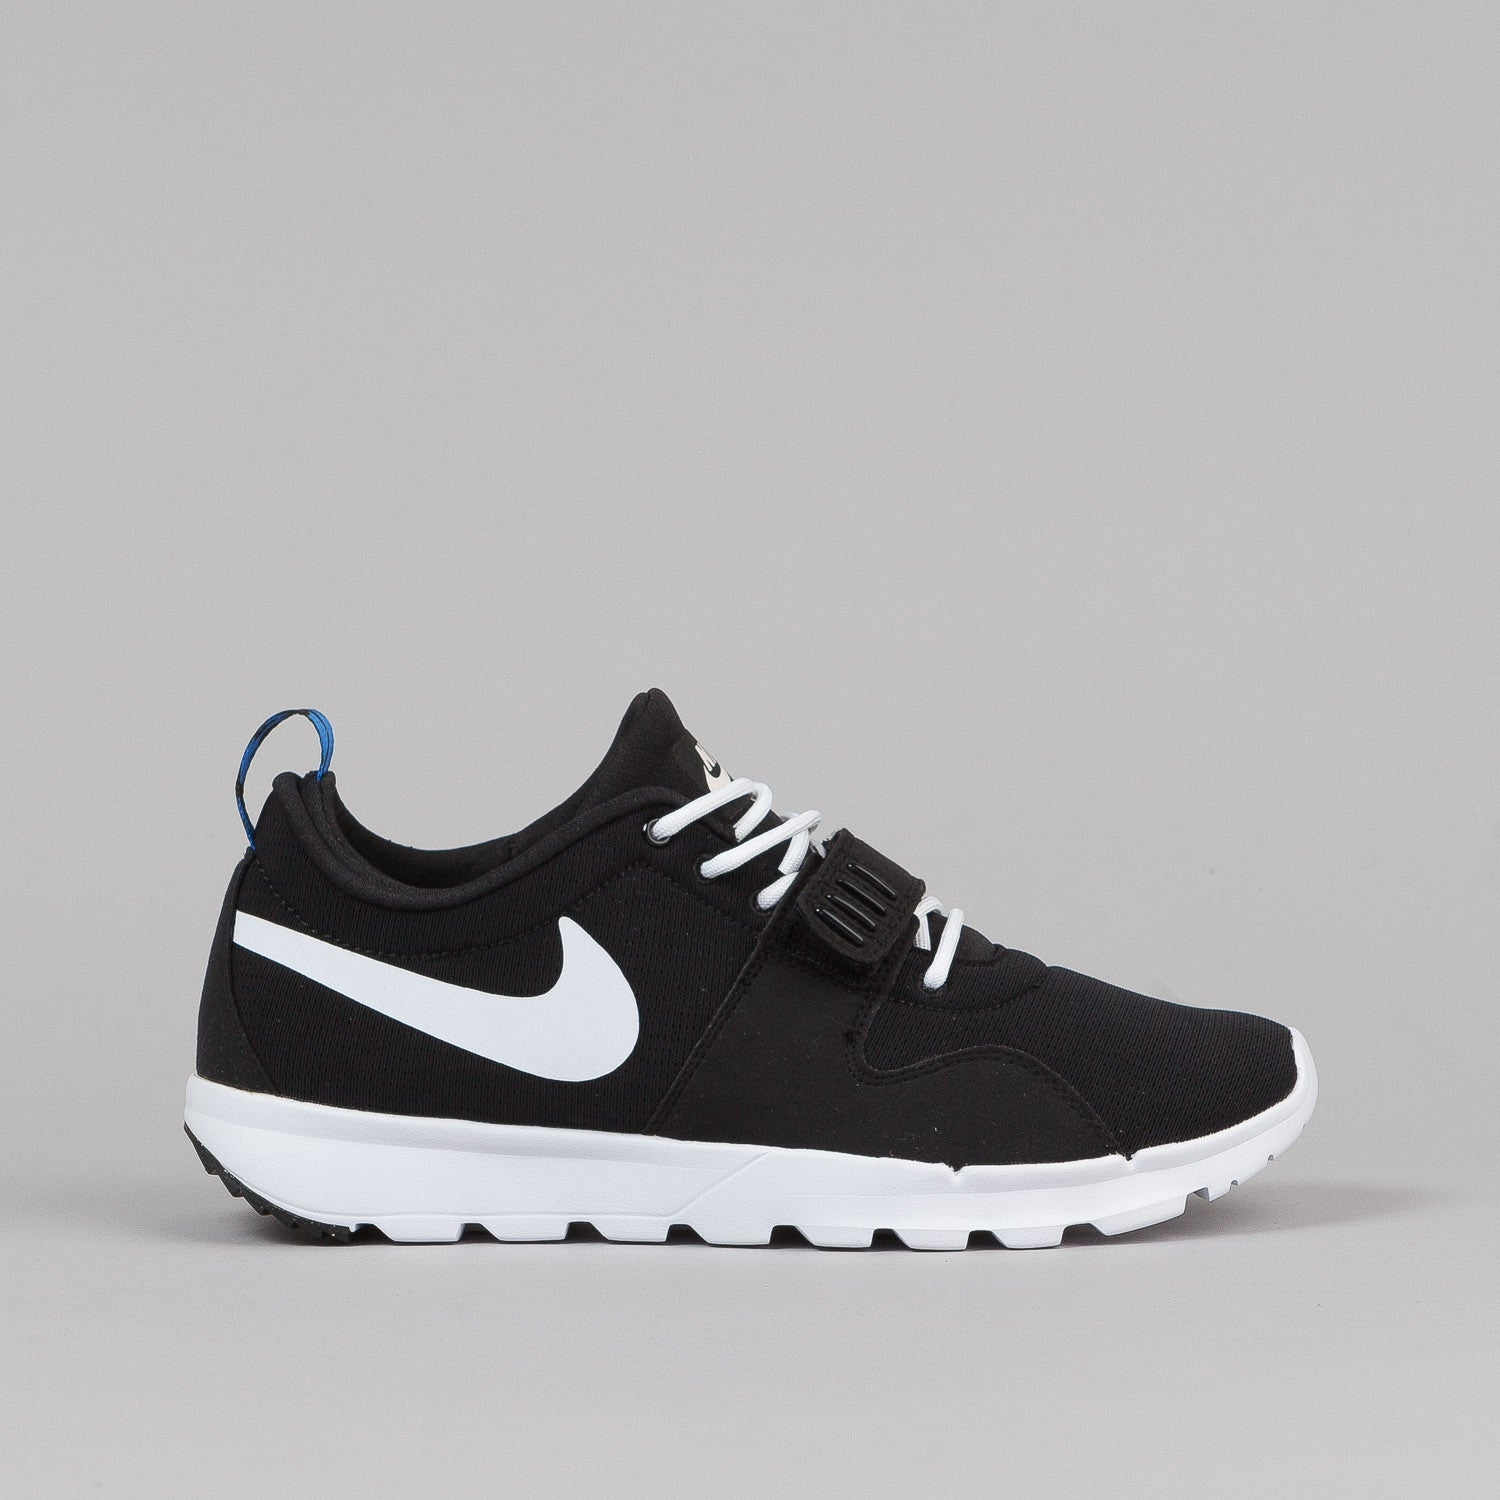 Nike SB Trainerendor SE Shoes